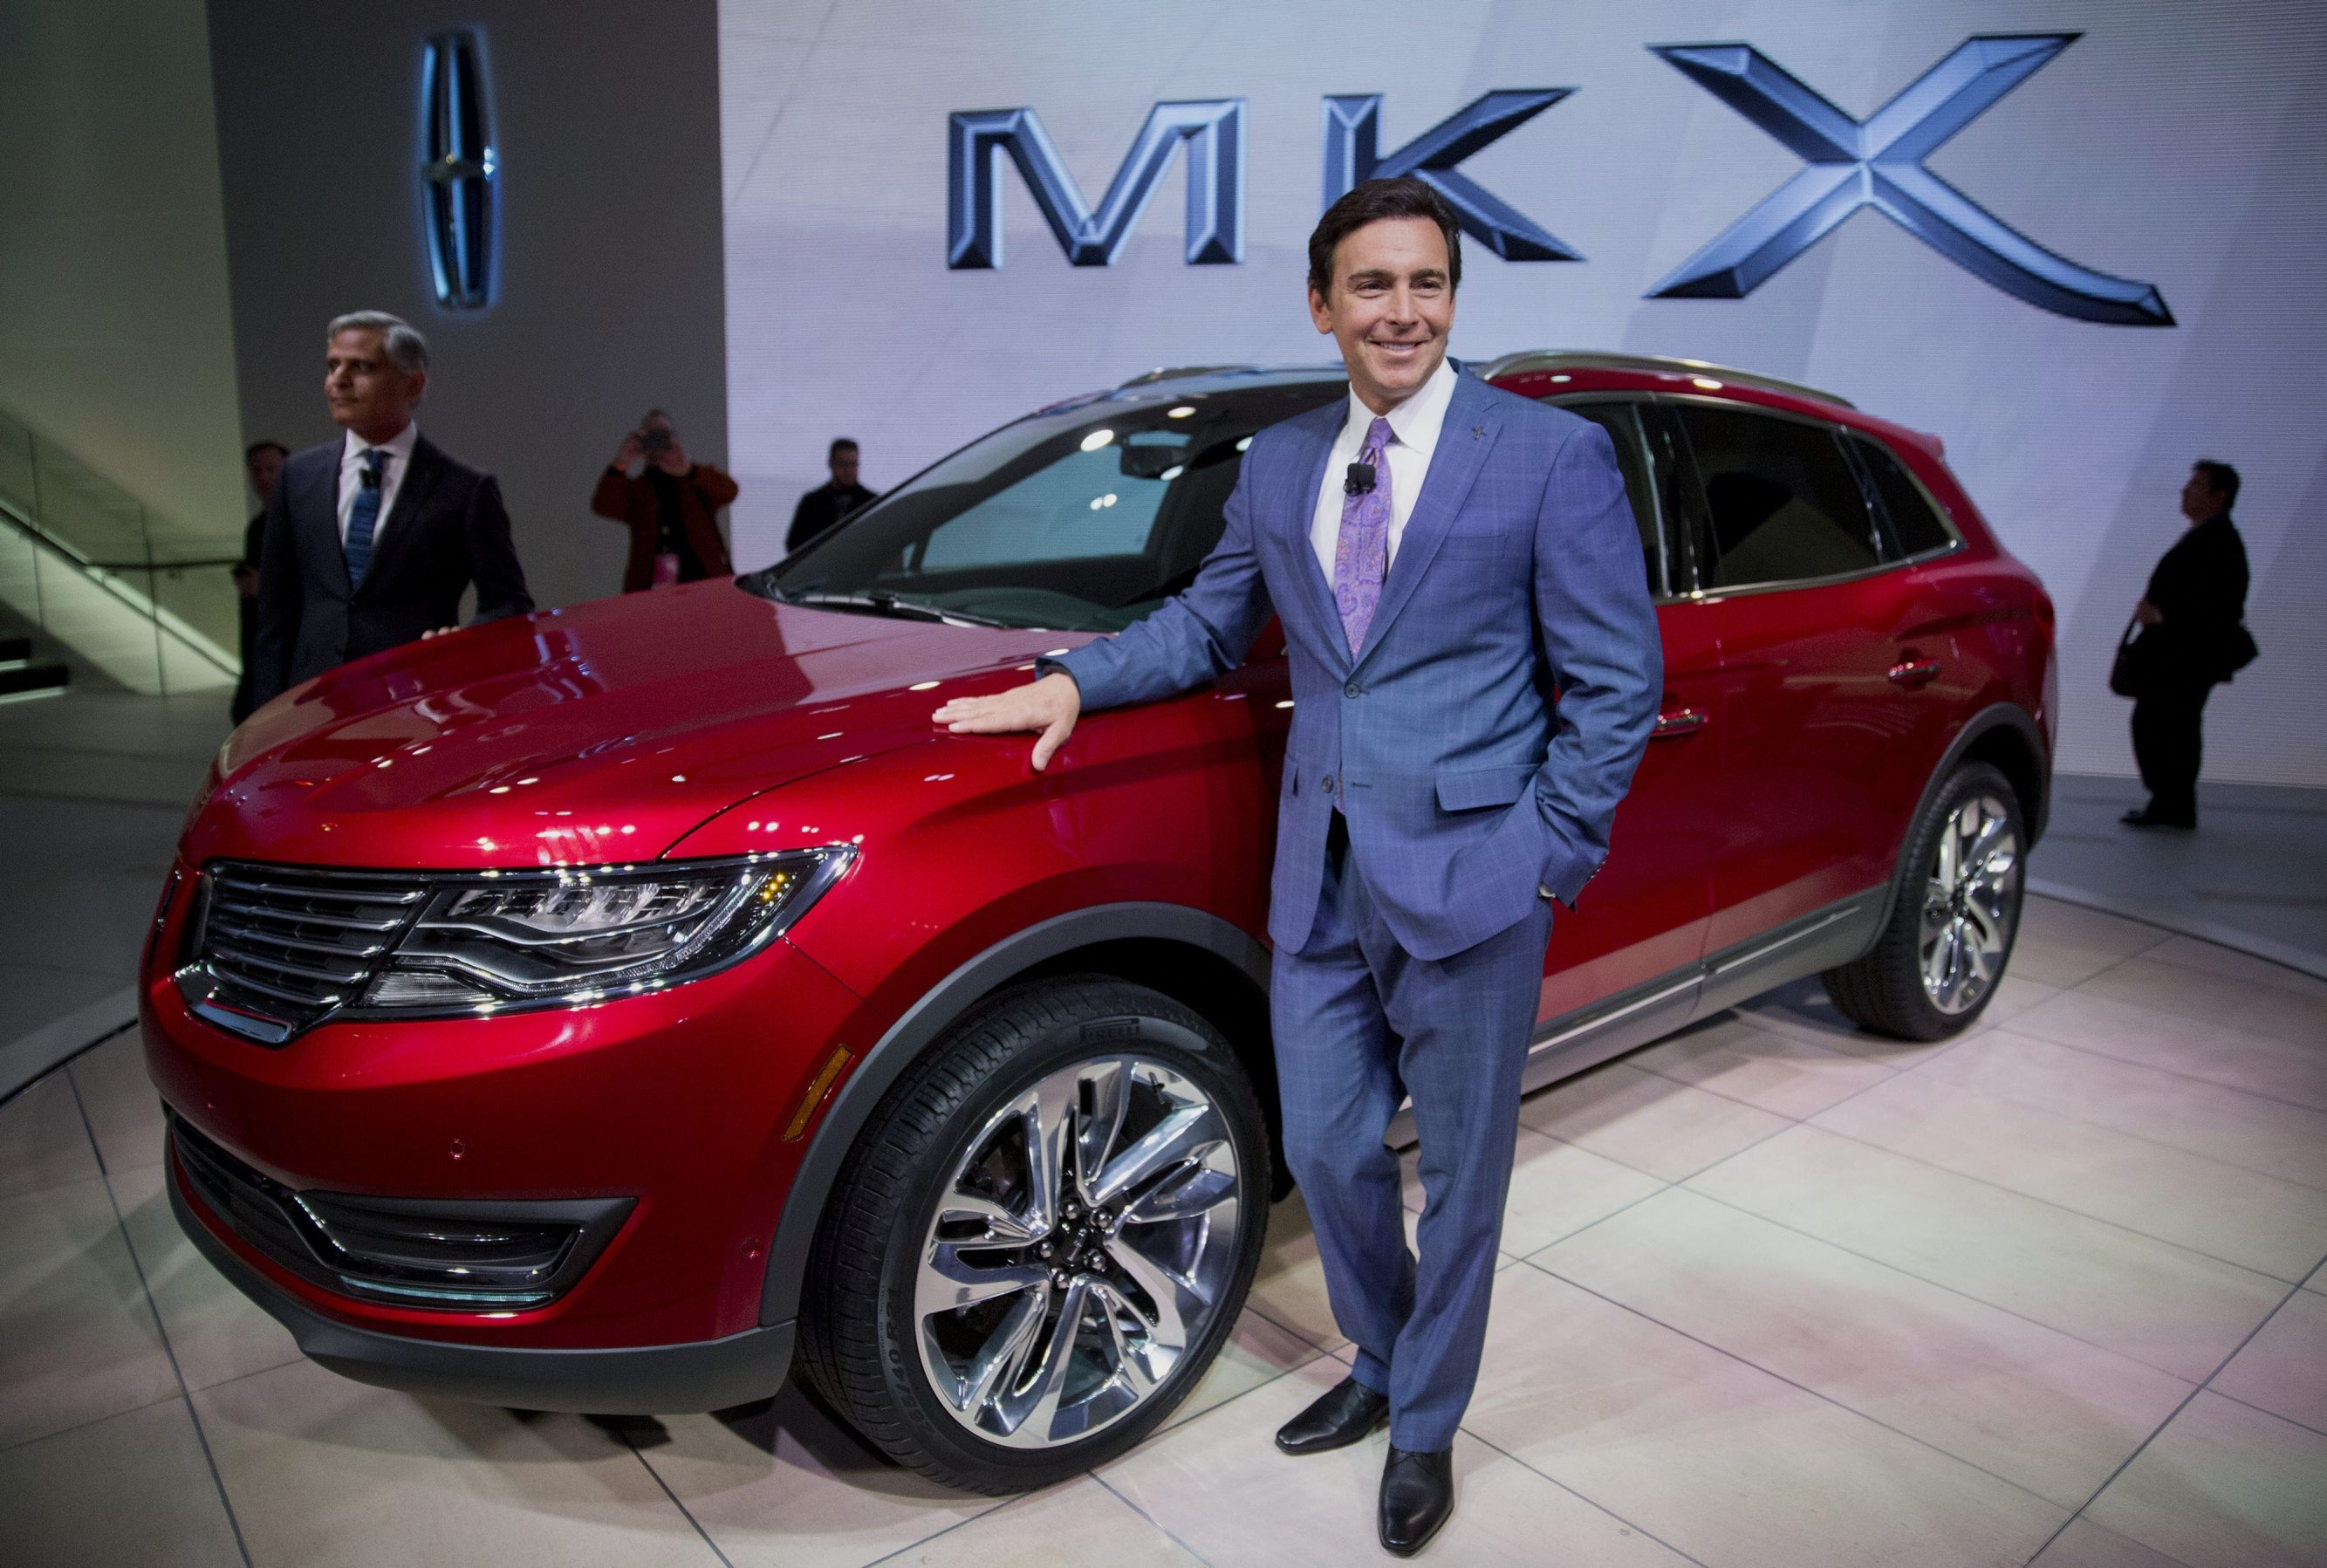 """Ford President and CEO Mark Fields cites investments and new products as """"positioning us for strong growth."""""""